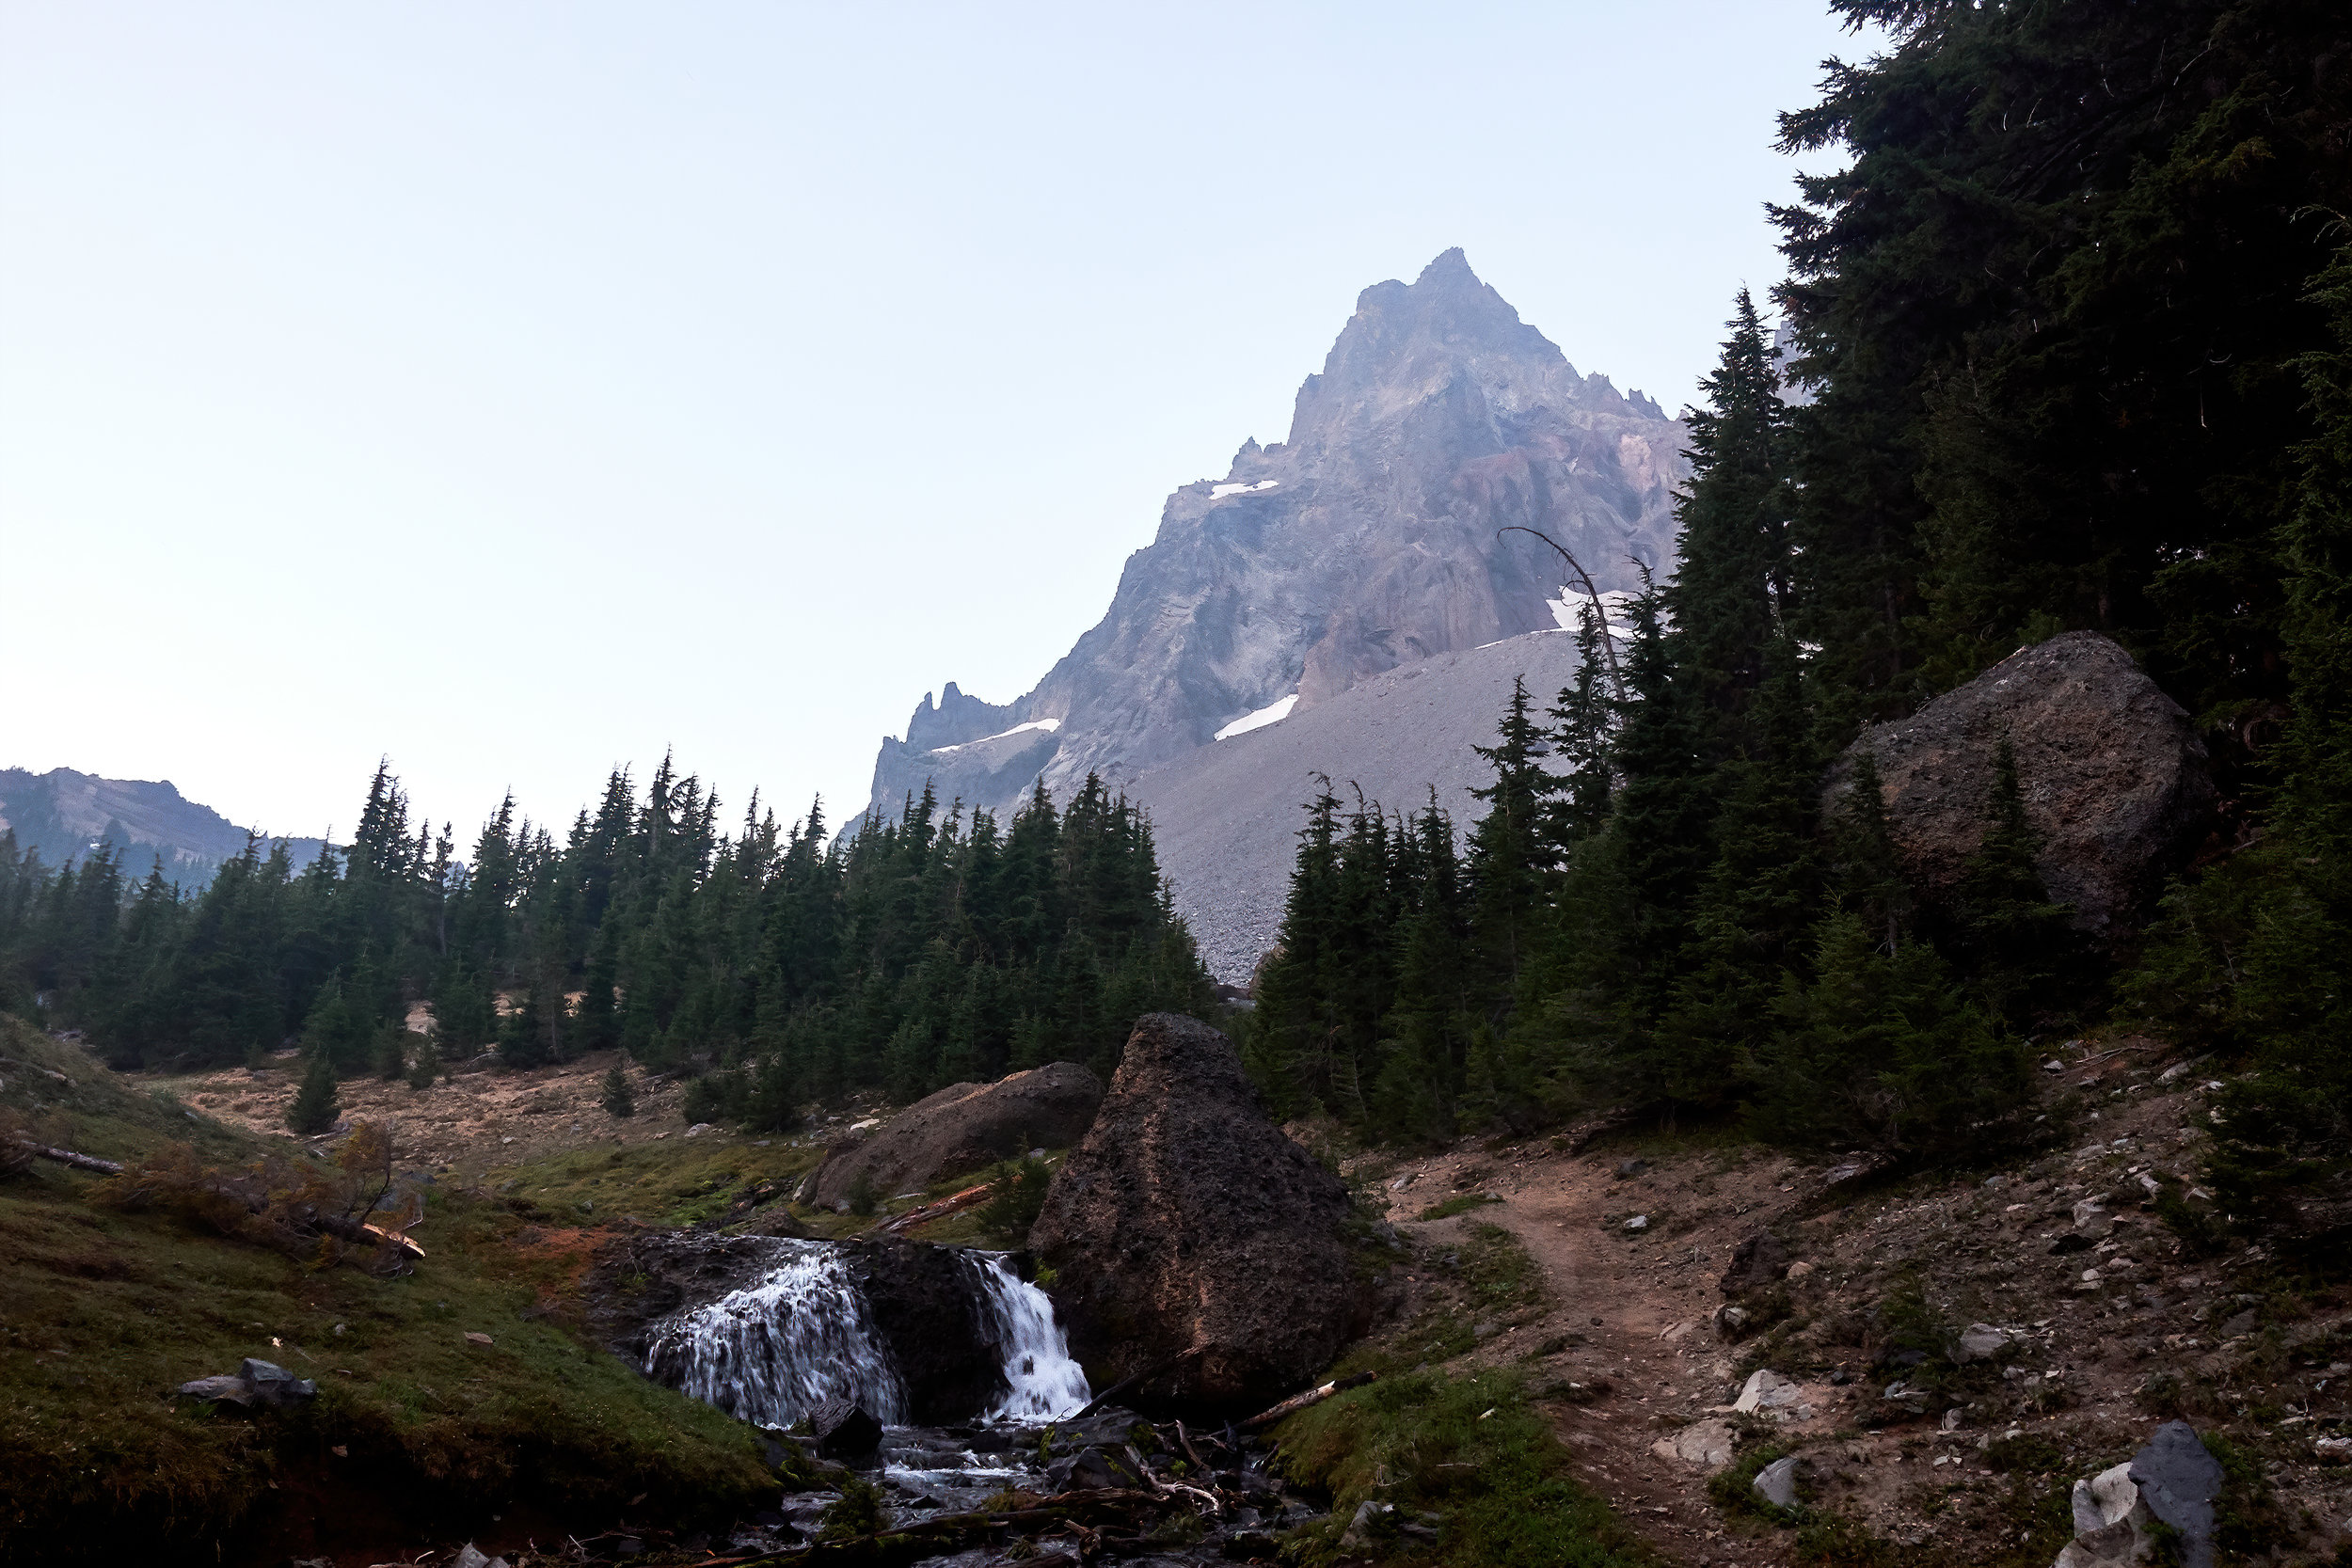 The creek with Mt. Thielsen in the background.